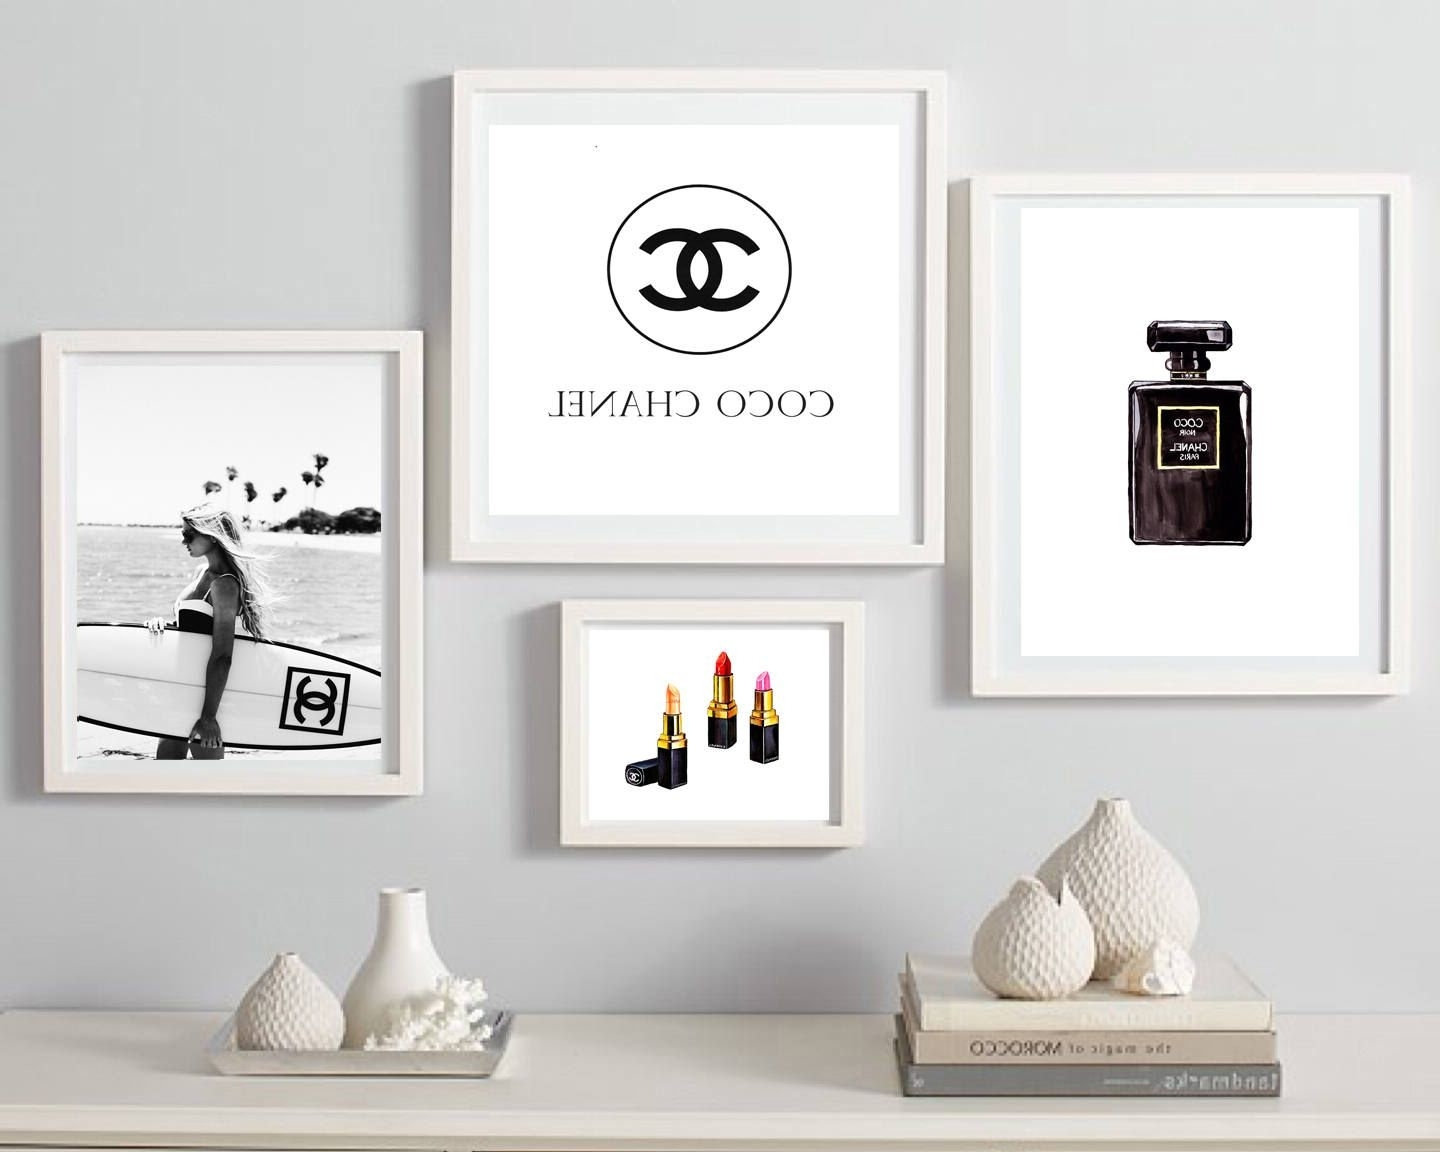 Coco Chanel Print, Fashion Wall Art, Set Of 4 Wall Decor, Coco Regarding Most Recently Released Fashion Wall Art (Gallery 3 of 20)